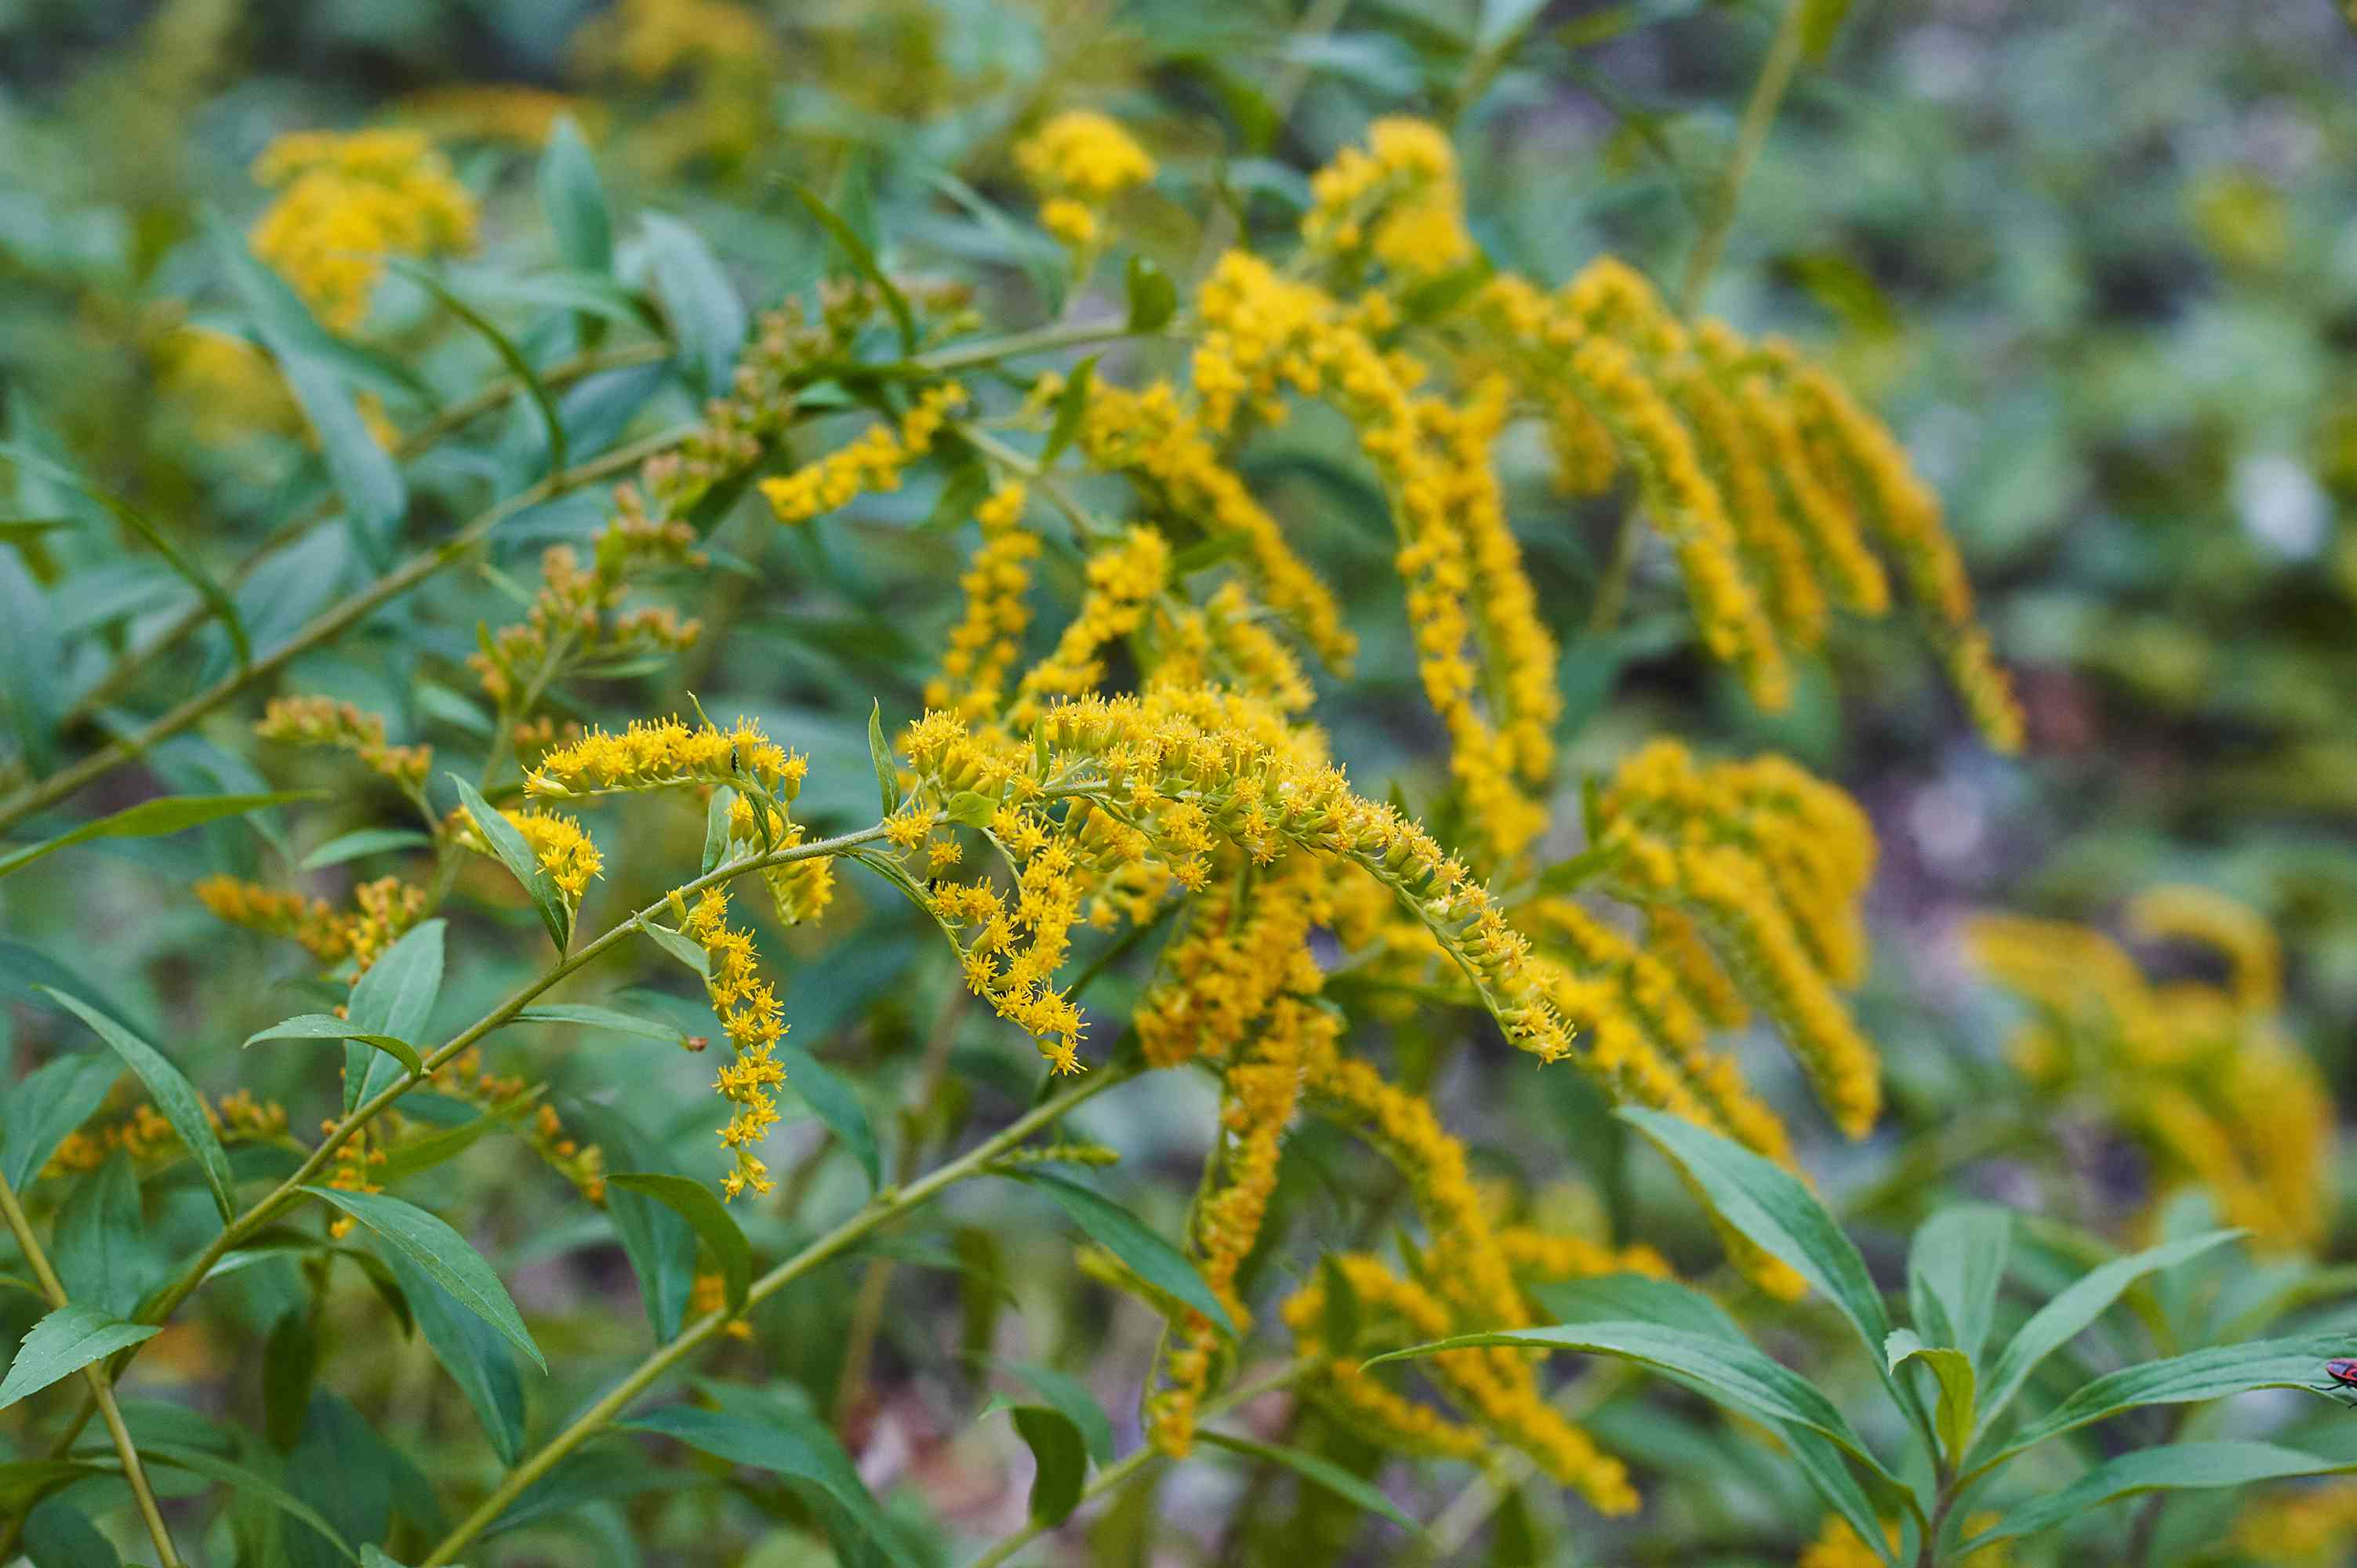 Beautiful yellow goldenrod flowers blooming